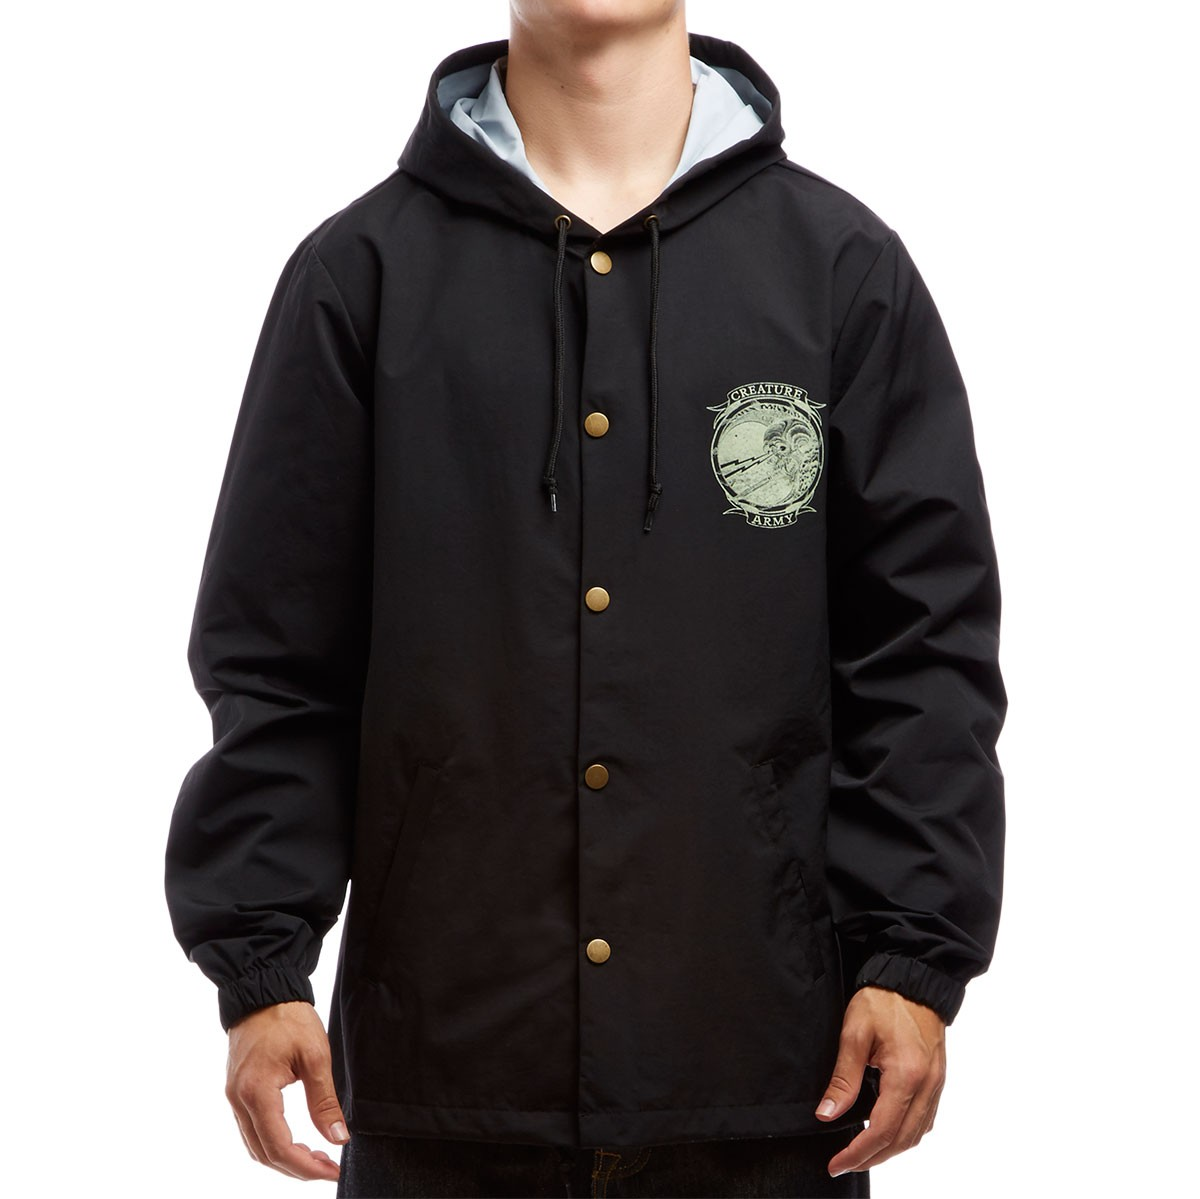 Find great deals on eBay for black hooded windbreaker. Shop with confidence.